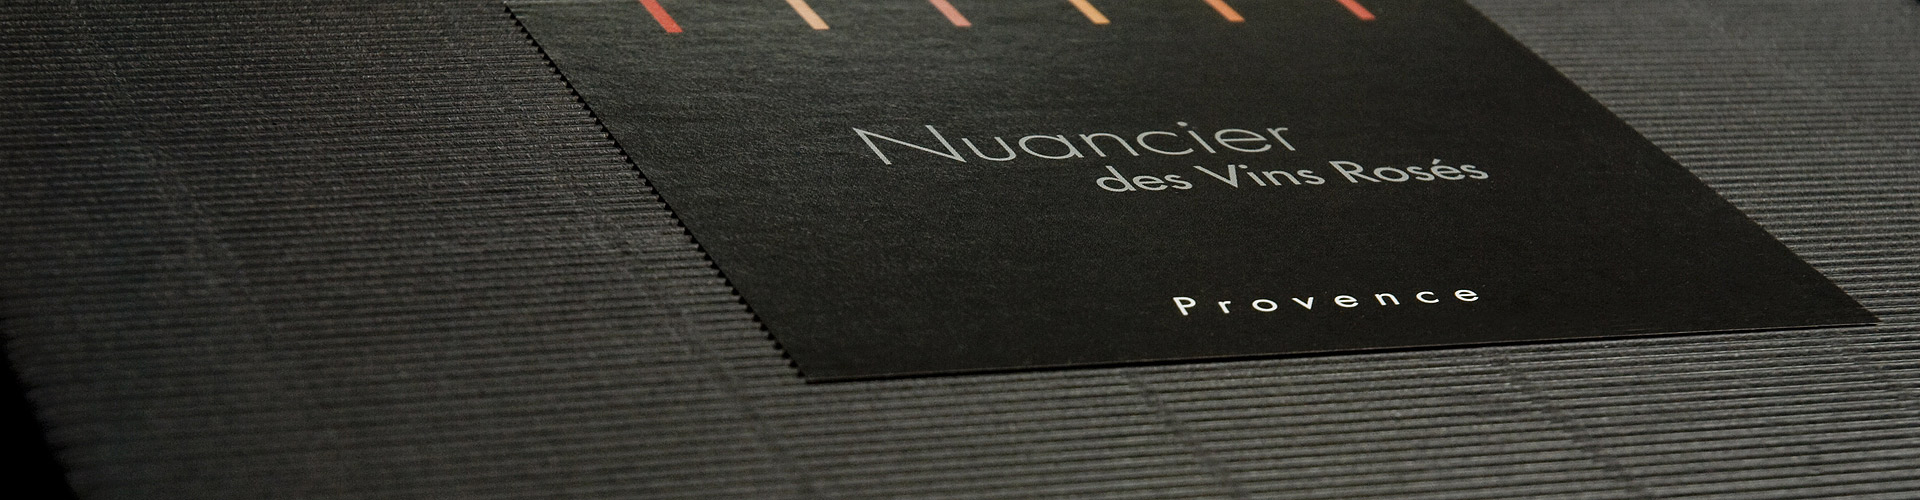 Packaging du Nuancier des Vins Roses de Provence